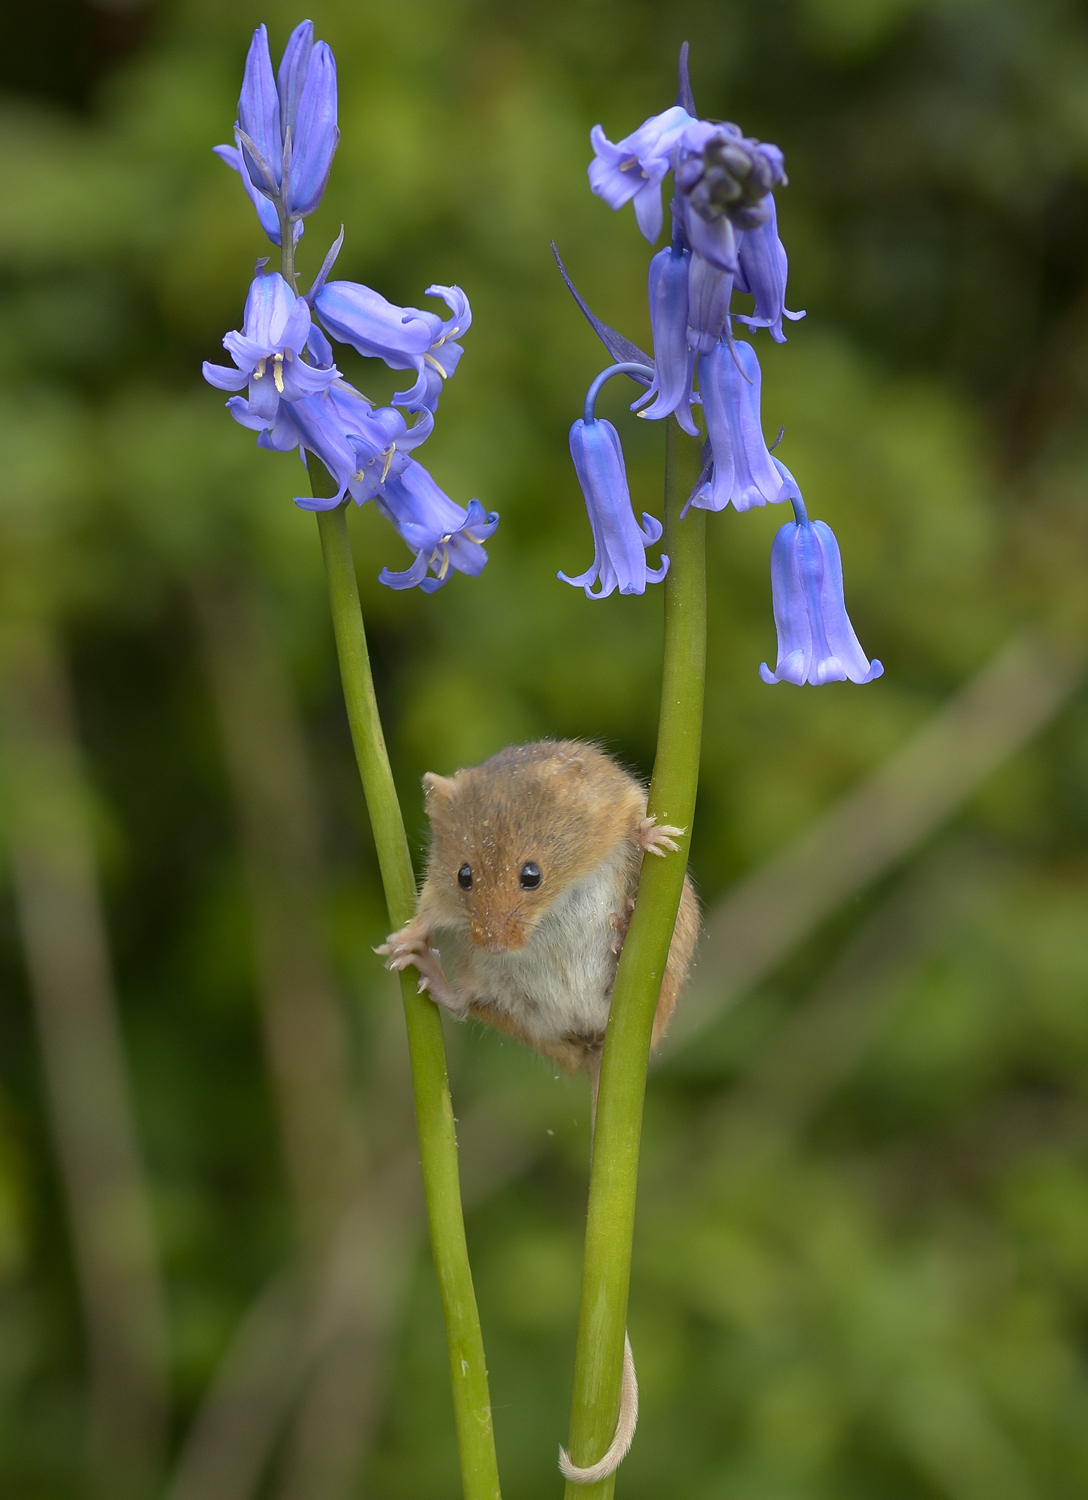 Harvest Mouse on Bluebell